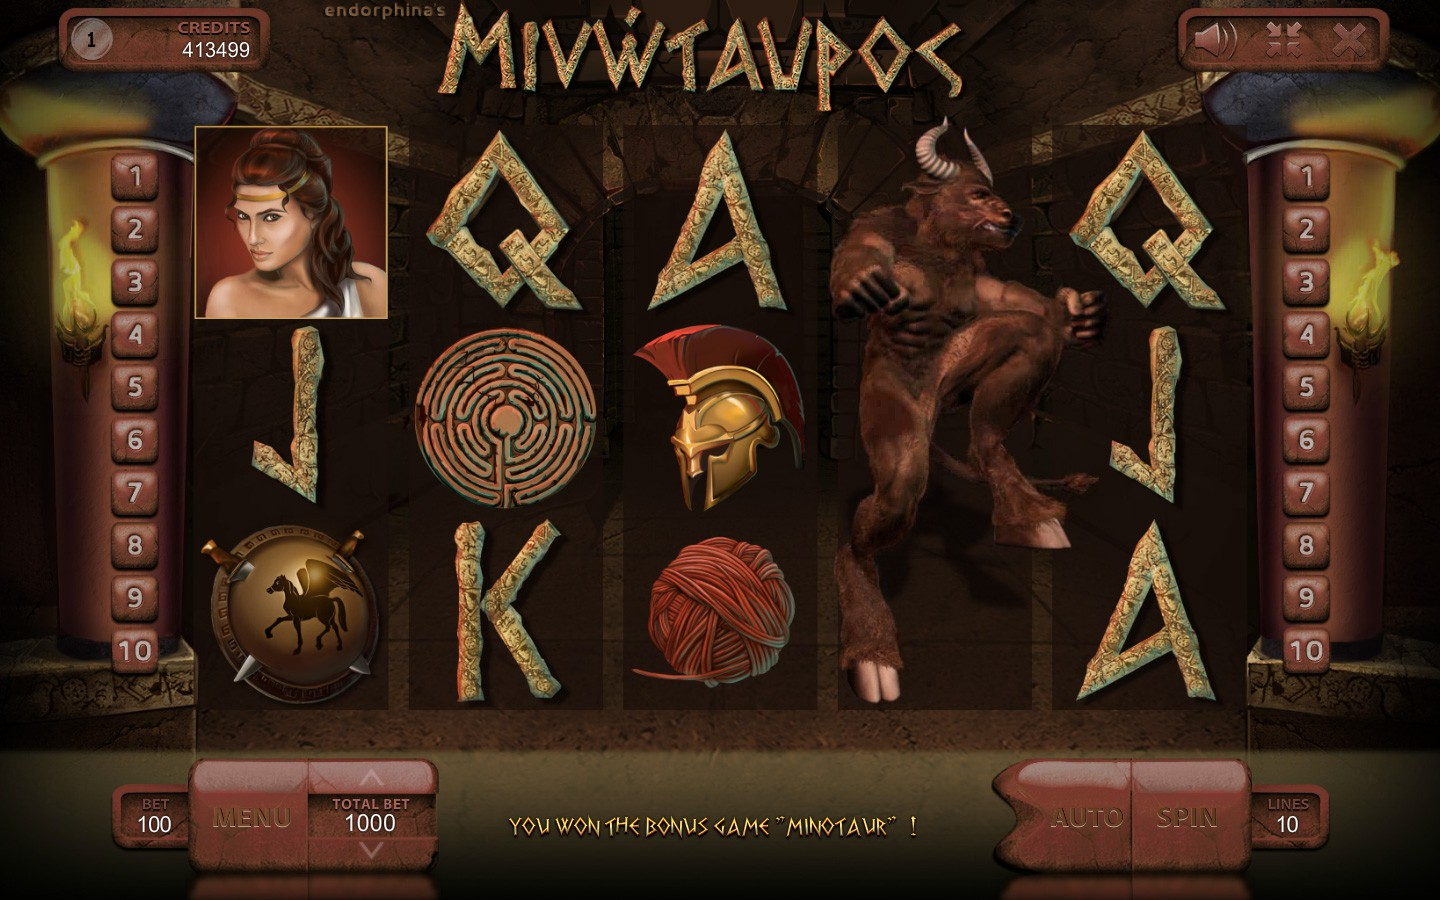 Minotaurus Slot Game | Online Casino Game by Endorphina